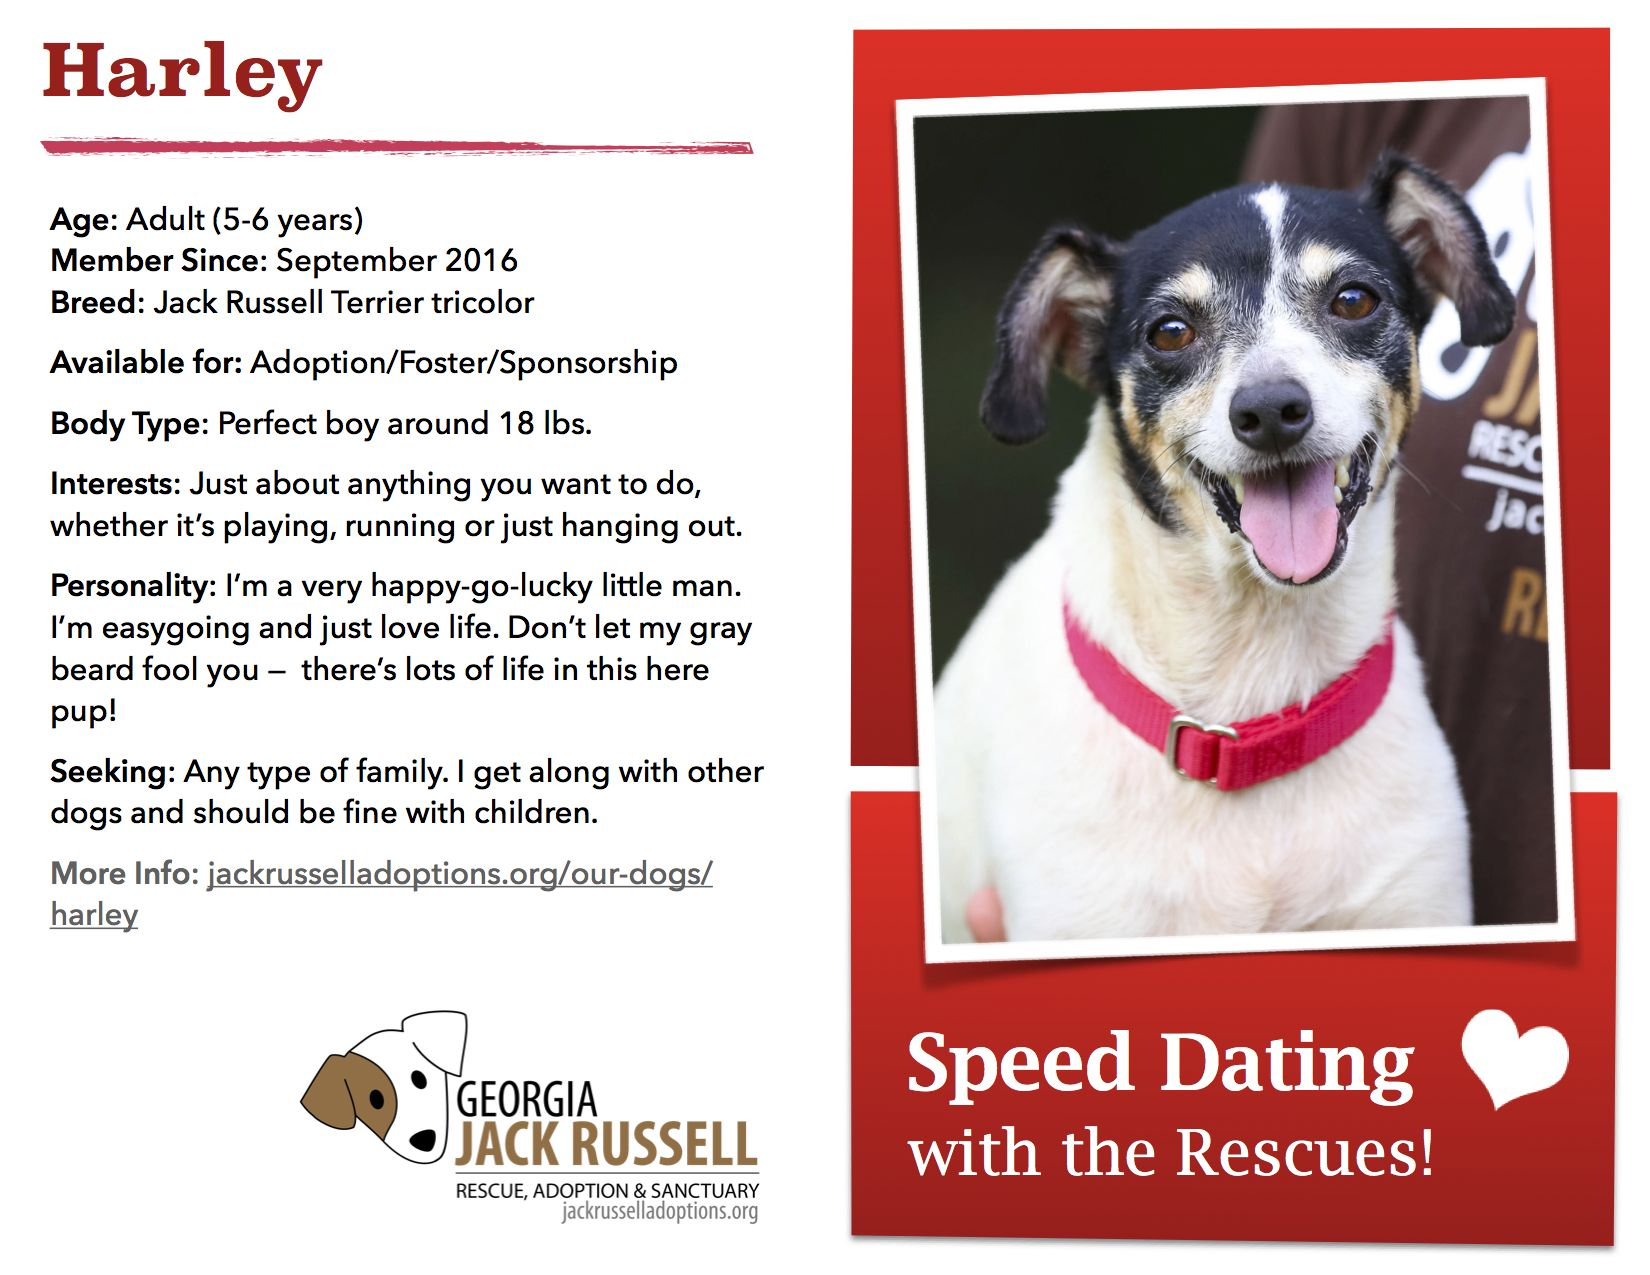 Harley is today's featured rescue! #Adoptable #JackRussell #Georgia